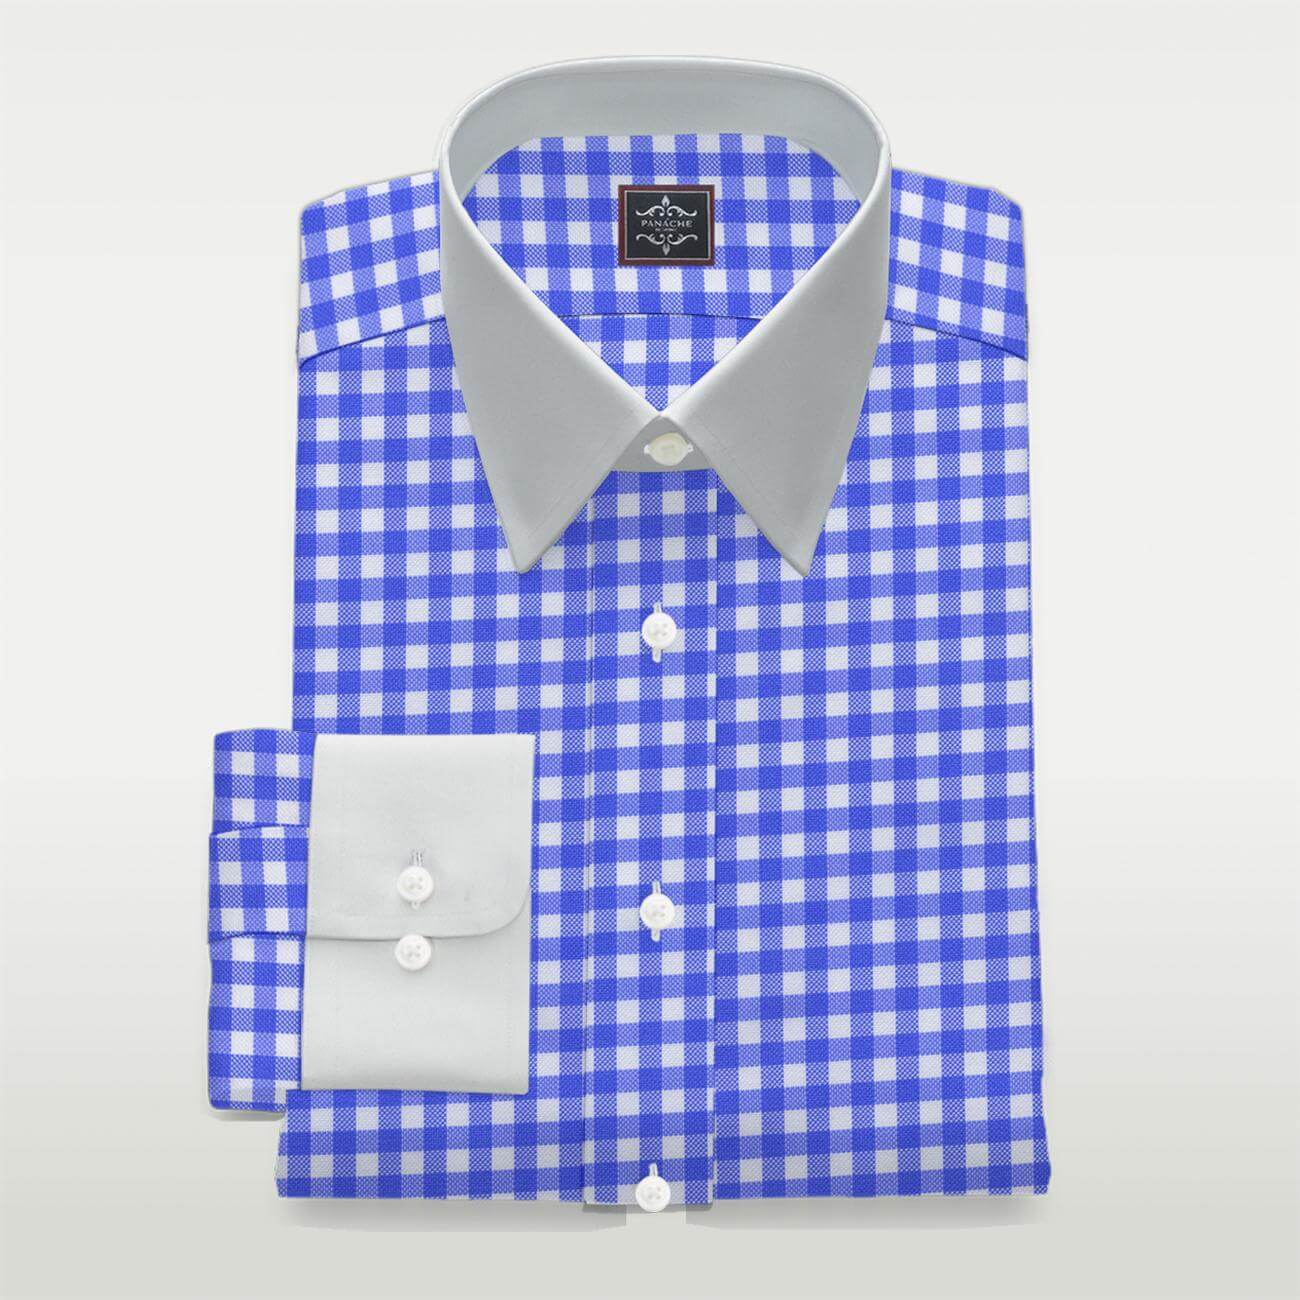 Custom Made Luxury Blue Checkered Shirt